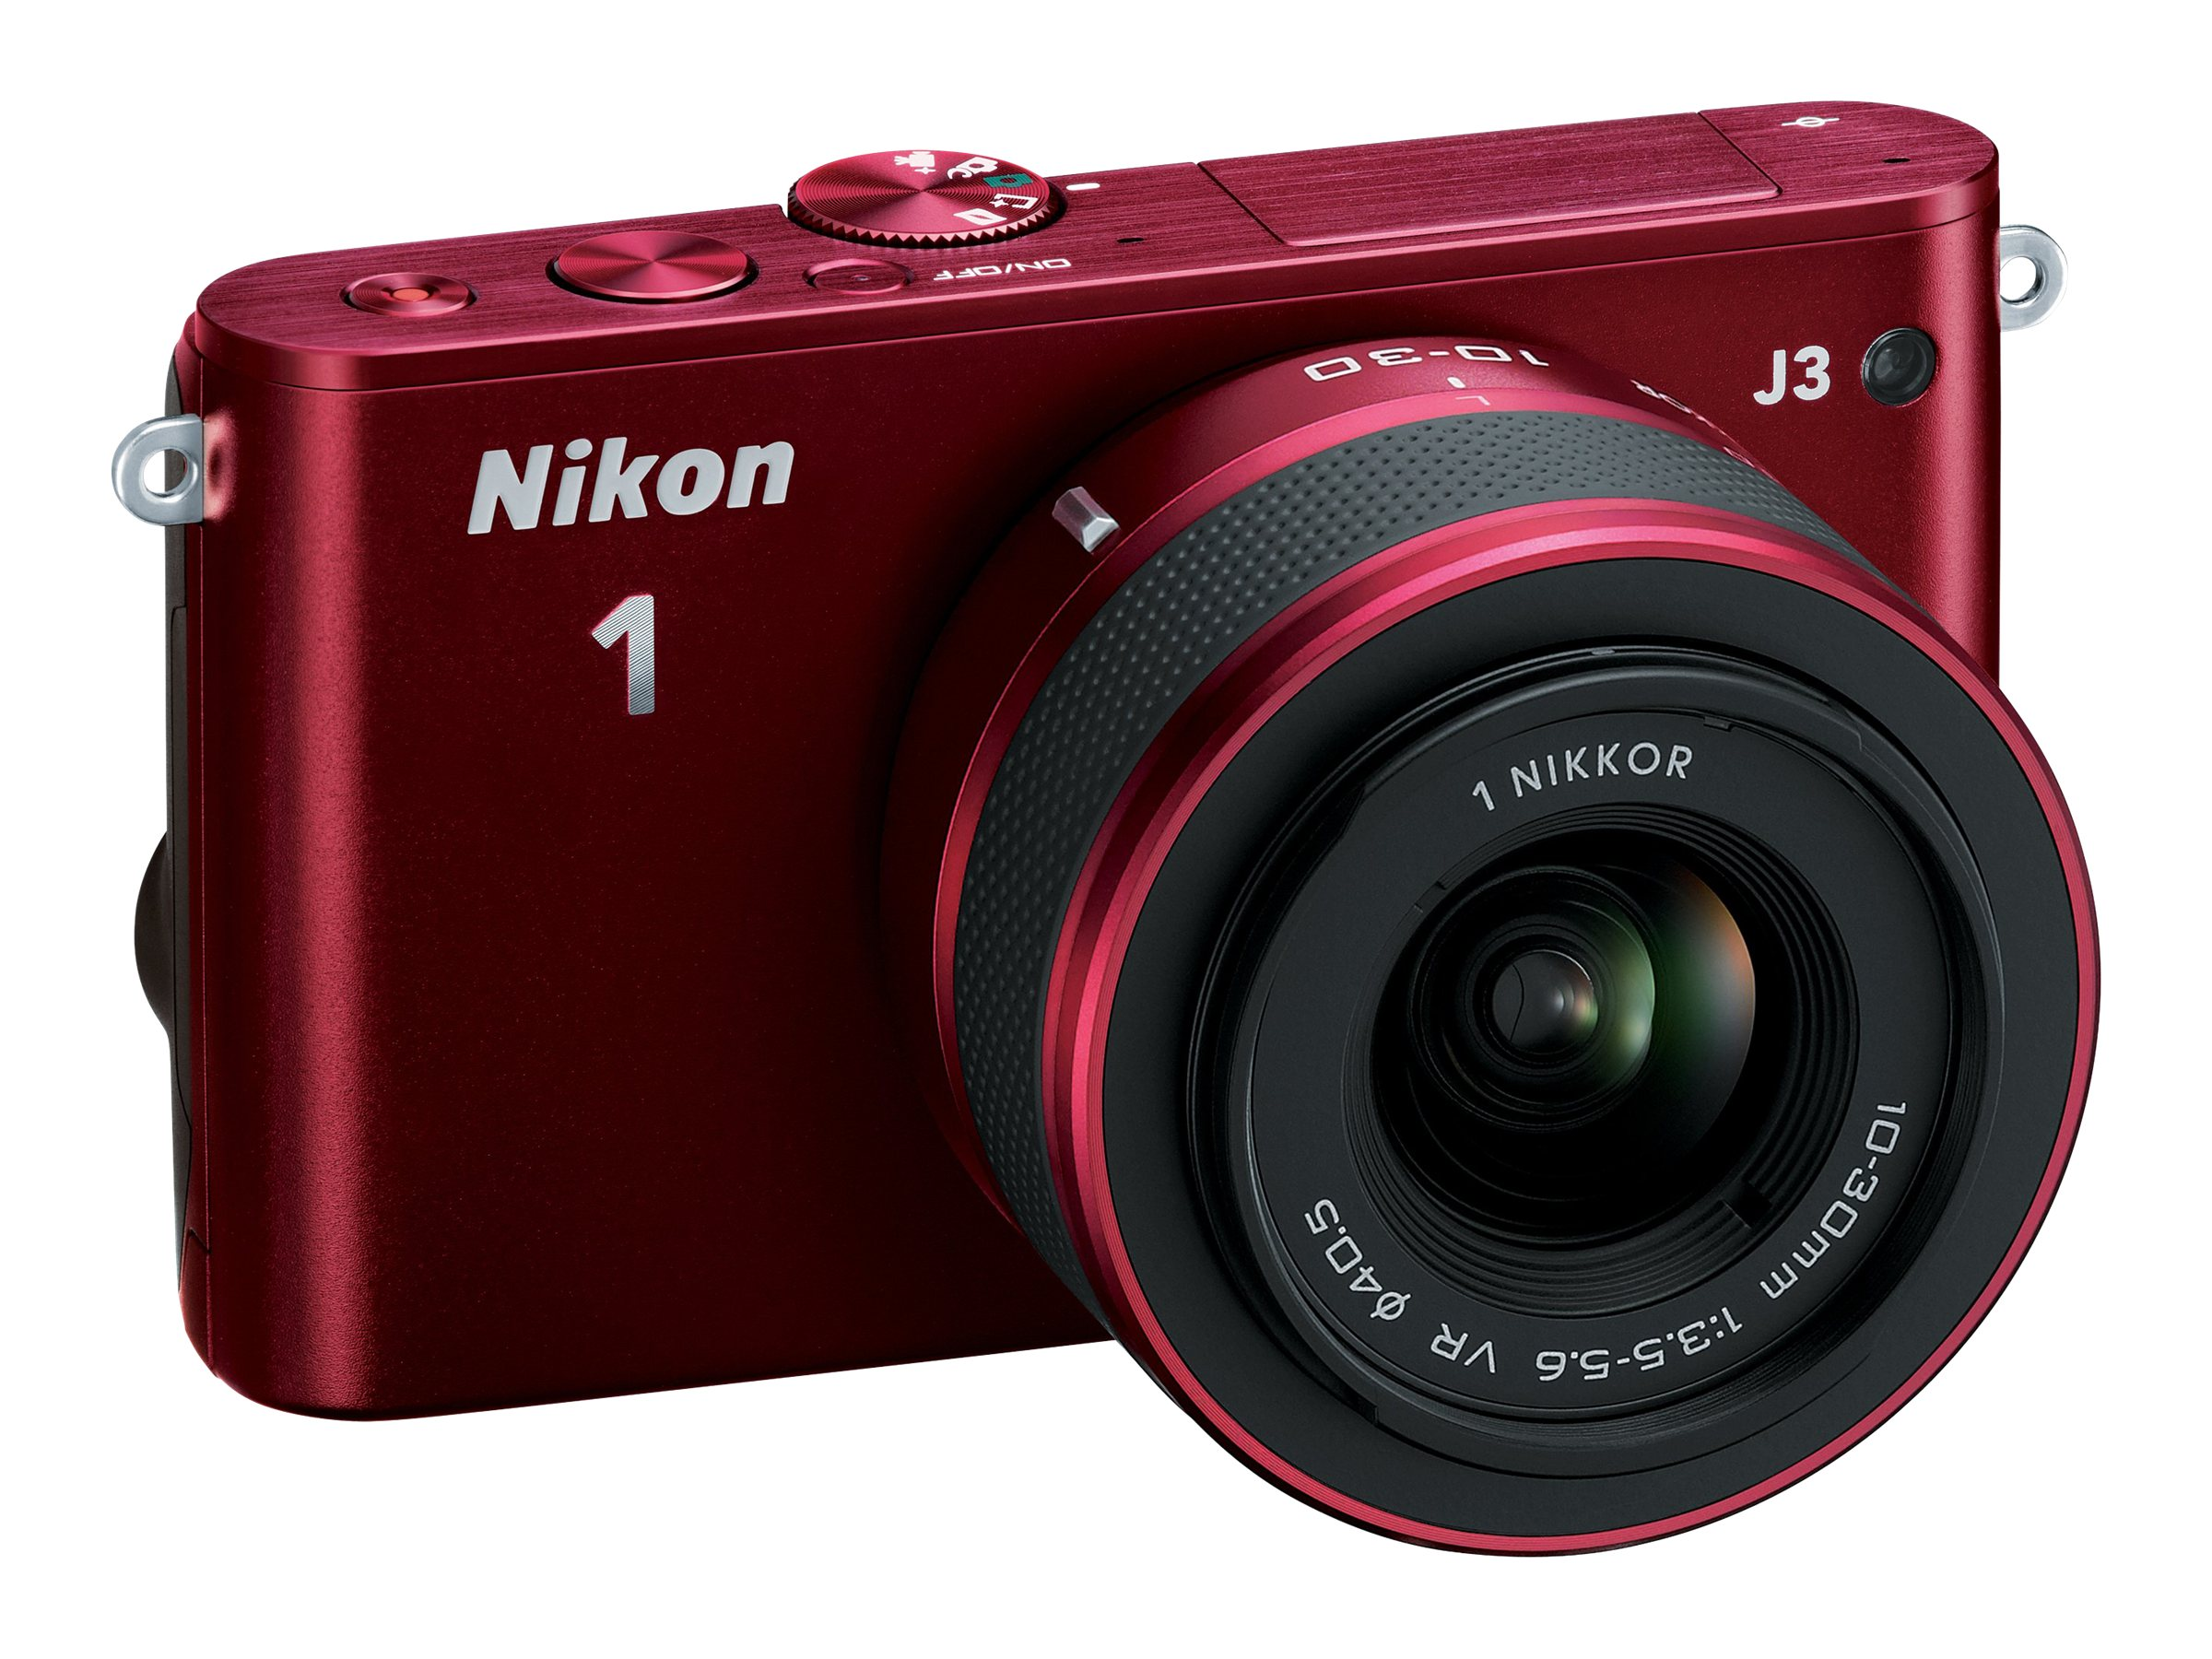 Nikon J3 Interchangable Lens Digital Camera, 14.2MP, Red with 10-30mm Lens, 27639, 15256447, Cameras - Digital - SLR